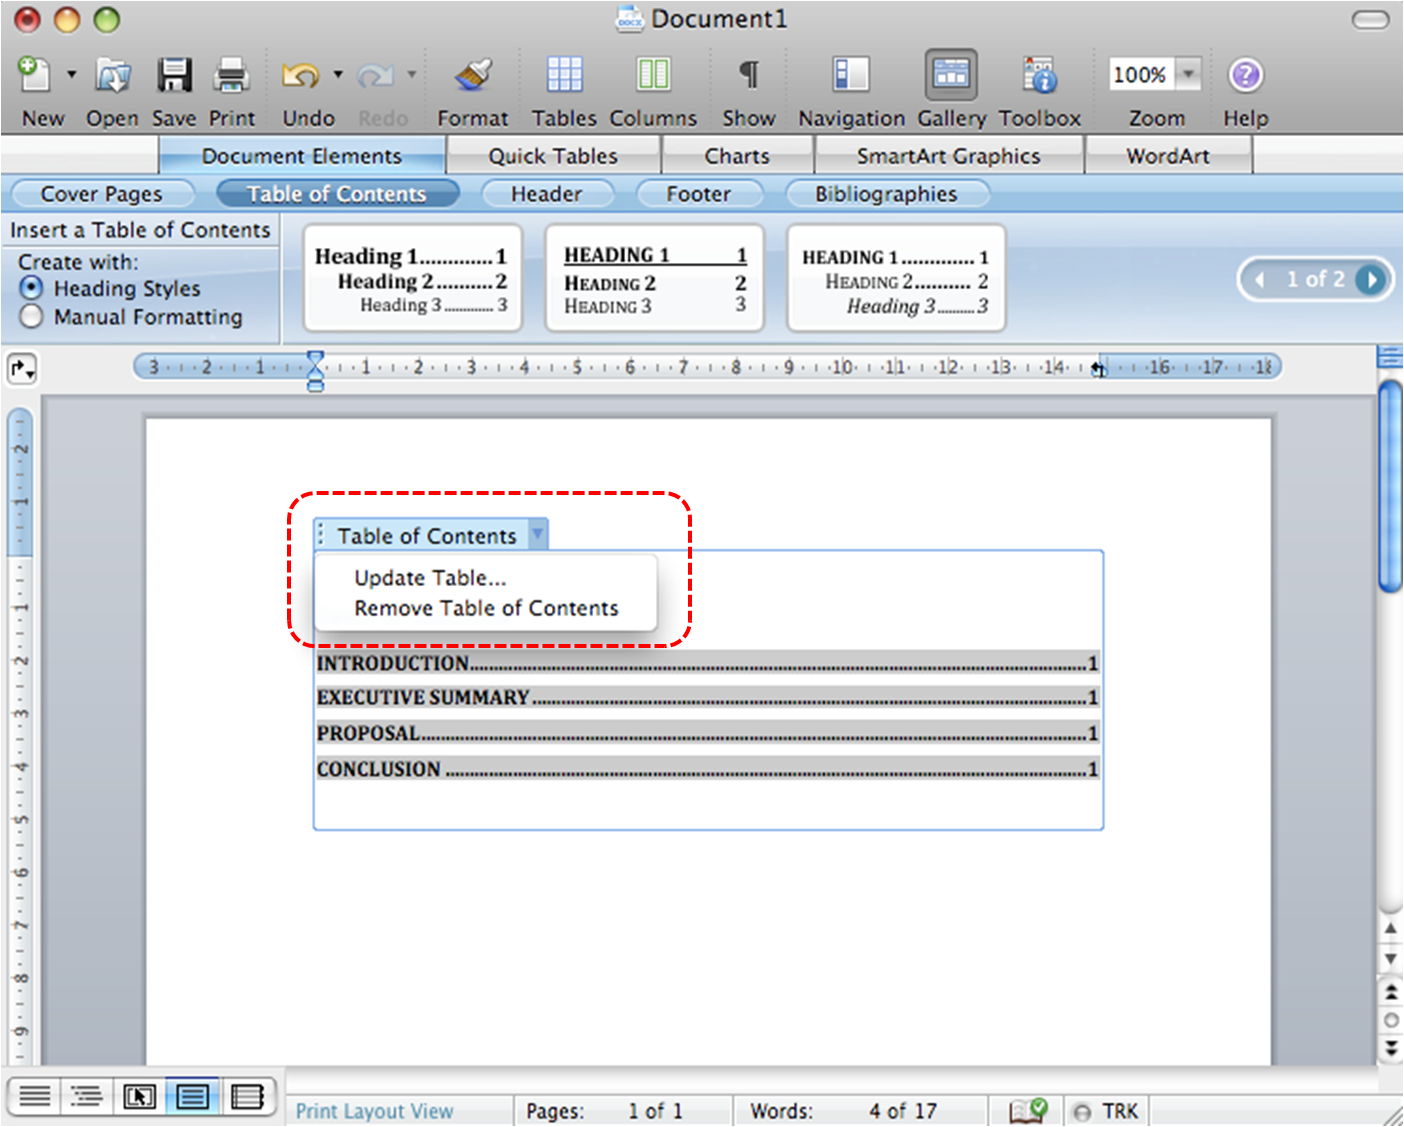 Image demonstrates Table of Contents menu as a result of selecting the icon beside Table of Contents.